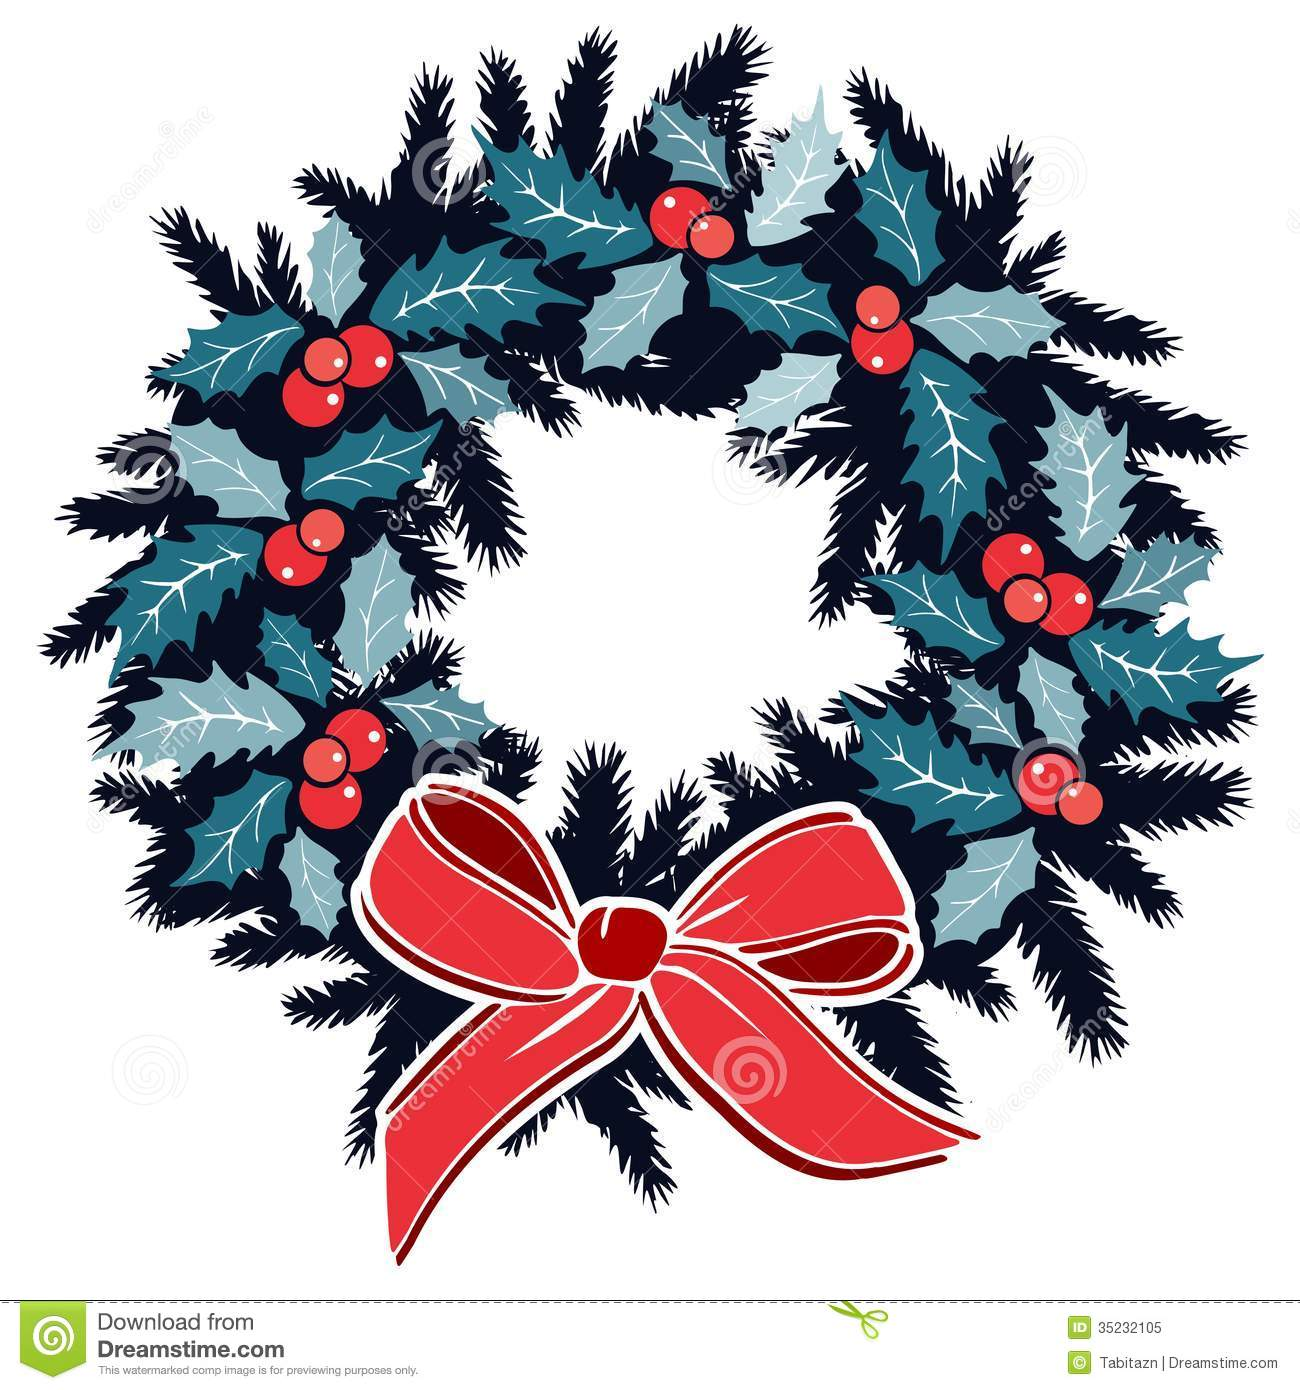 Why is holly a traditional christmas decoration - Berries Christmas Decoration Evergreen Holly Illustration Isolated Ribbon Traditional